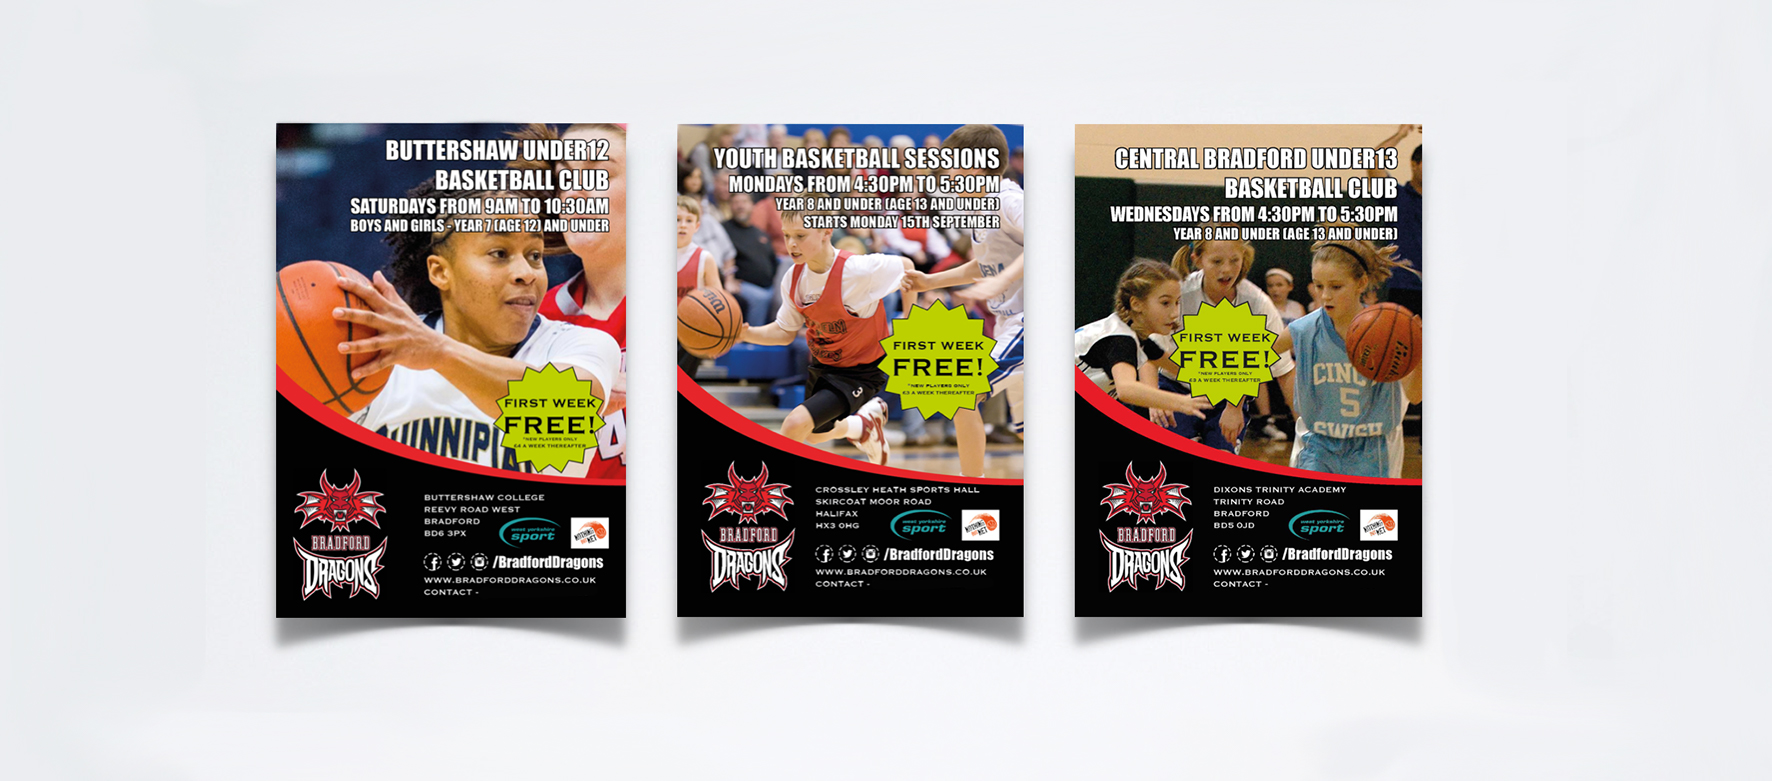 Bradford Dragons - Promotional leaflets - THAT Branding Company - Creative Design and Branding Agency in Newcastle and Gateshead.jpg